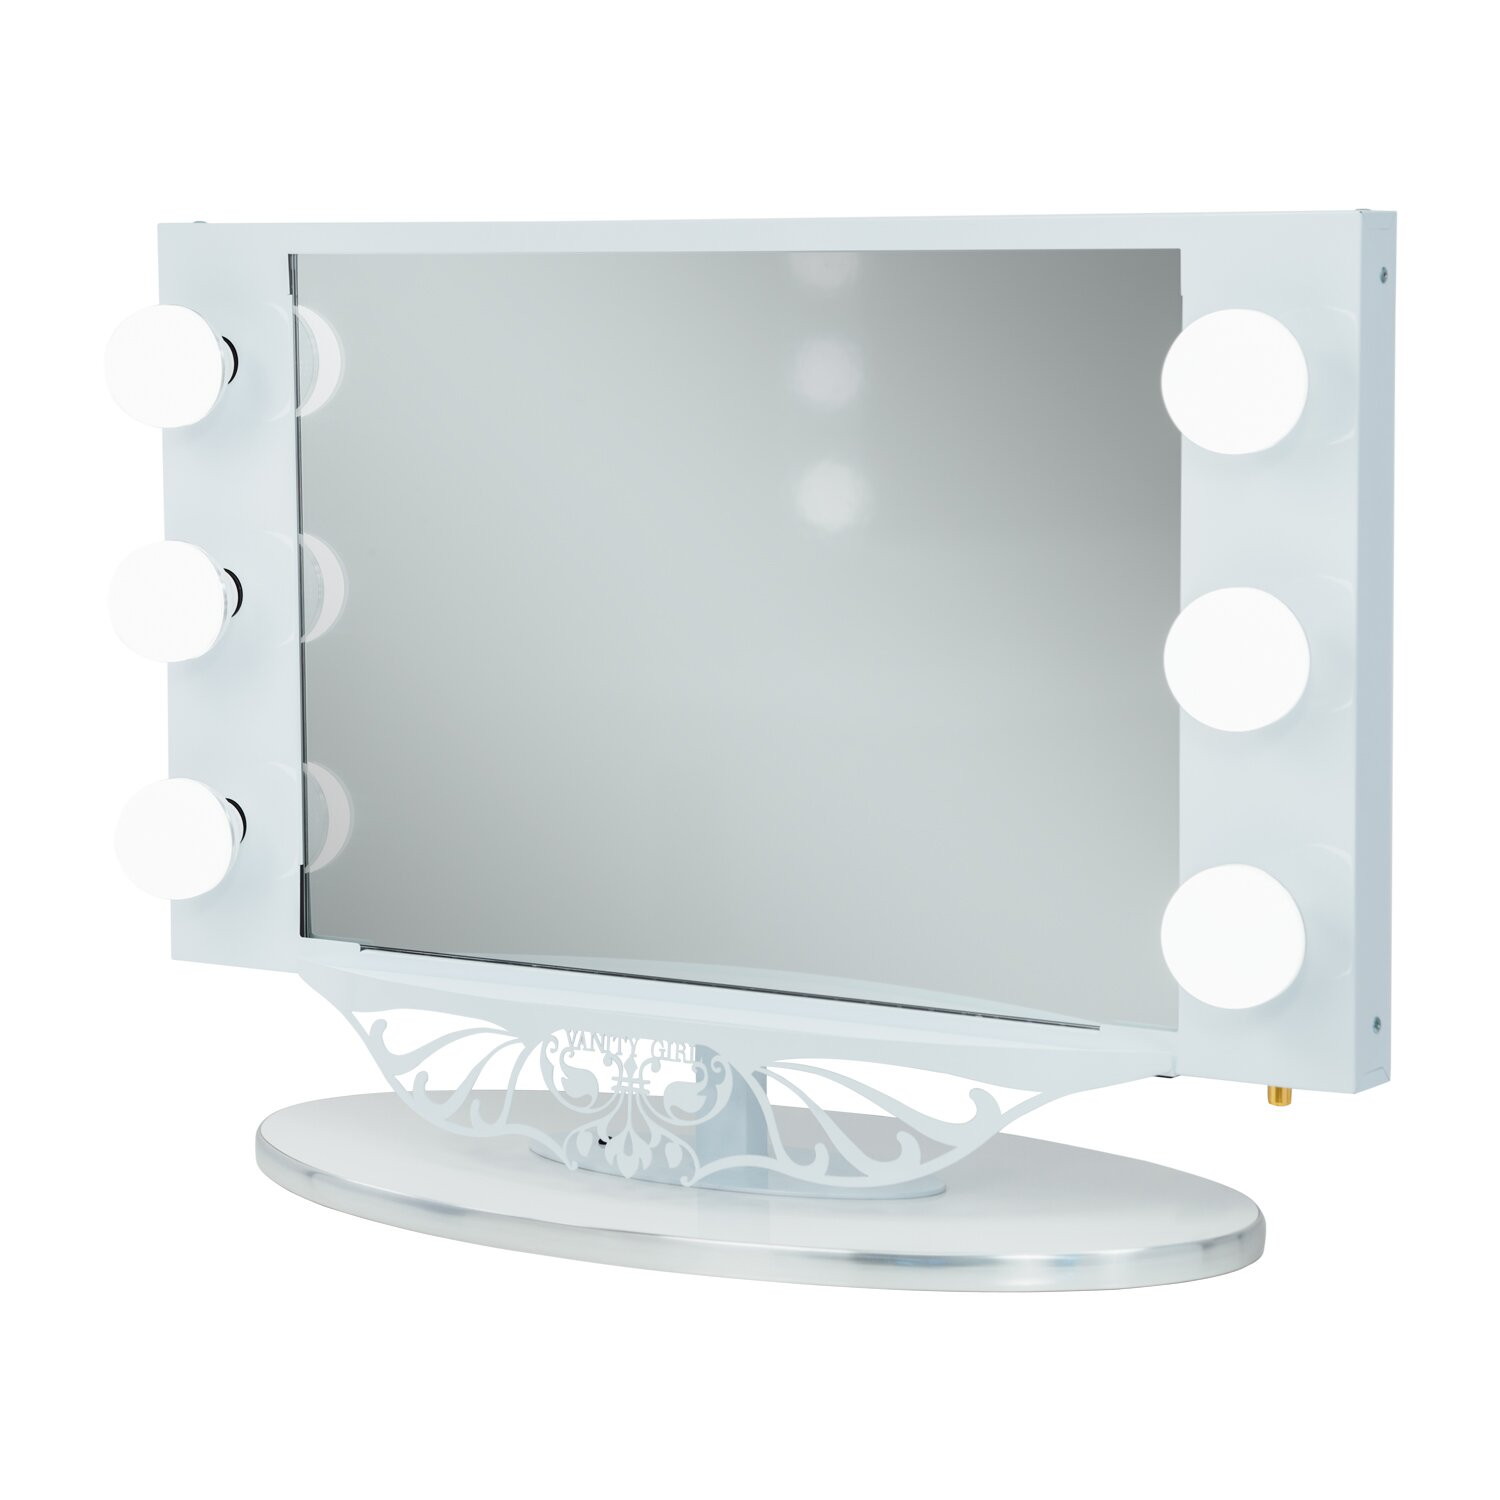 Starlet Lighted Vanity Mirror Reviews : Vanity Girl Hollywood Starlet Lighted Vanity Mirror & Reviews Wayfair